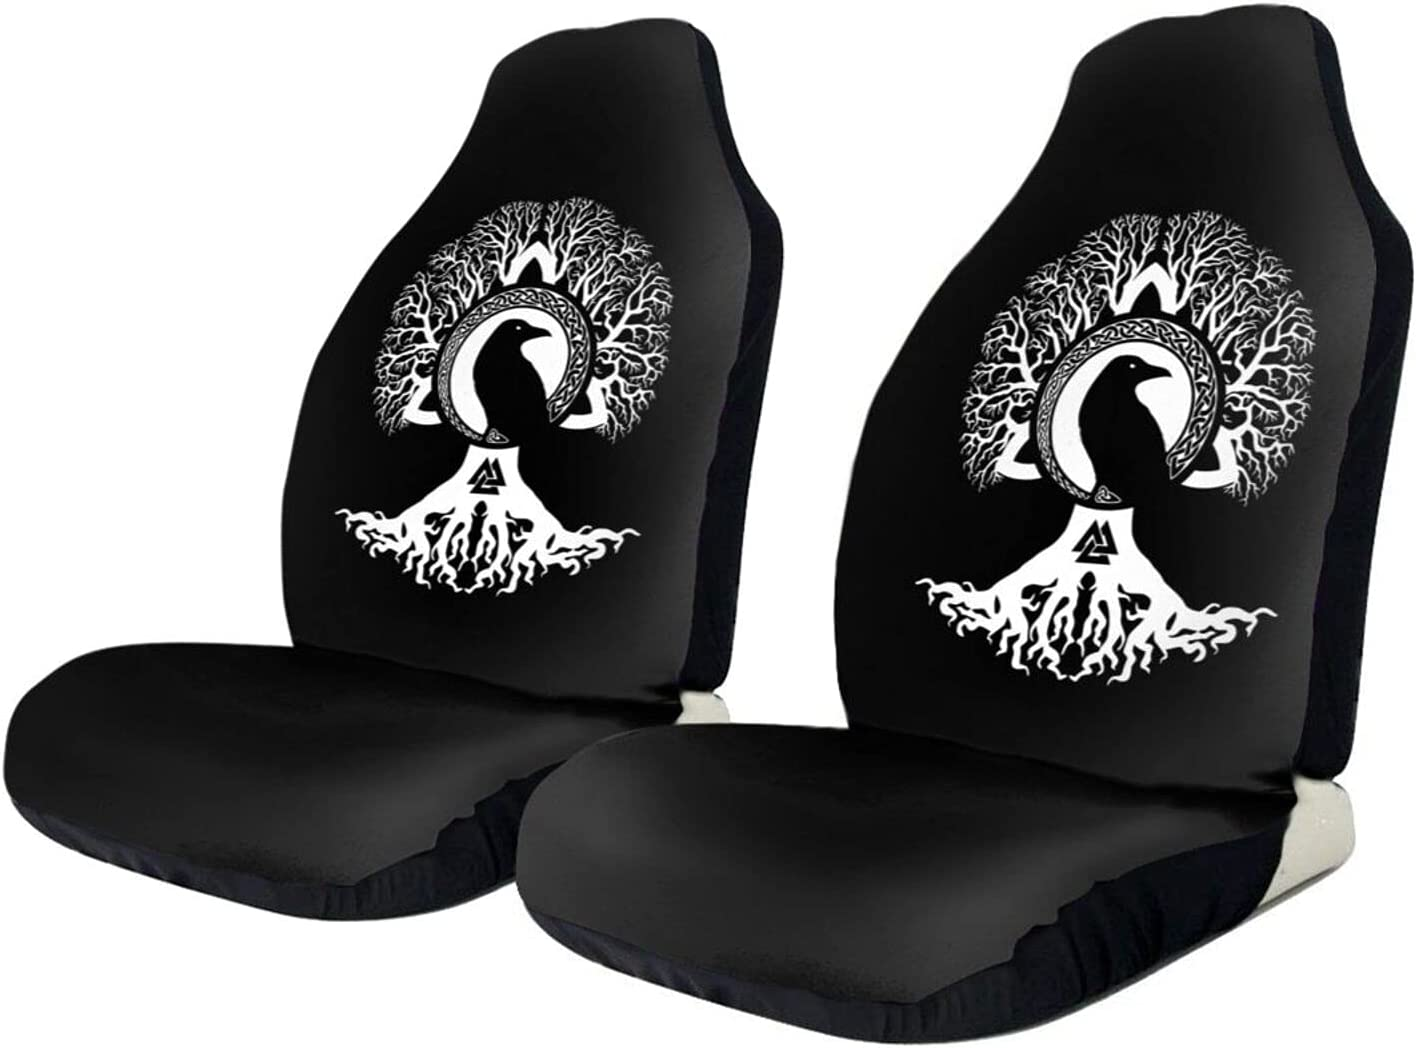 Vegvisir Yggdrasil Tree of Life Seat Cushion Cover Protector Cheap sale Car Max 83% OFF